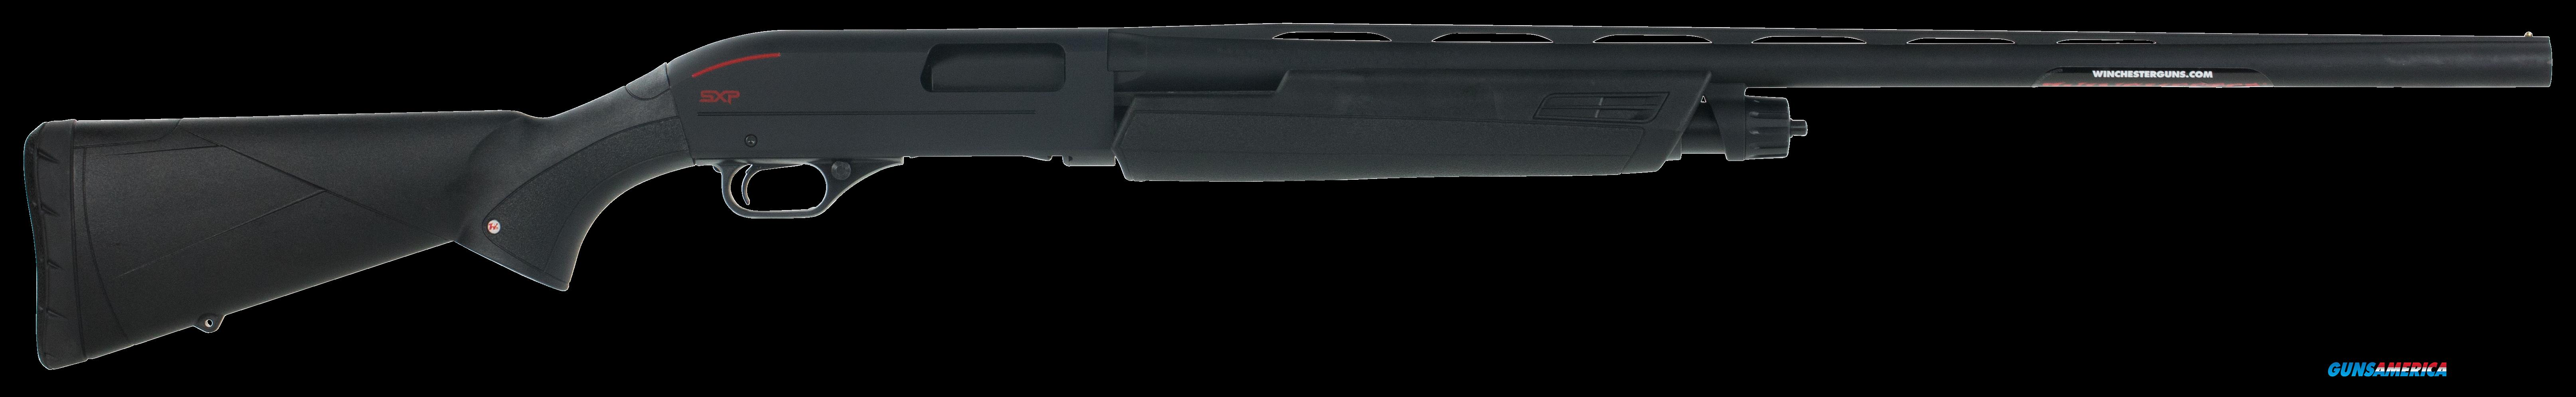 "Winchester 512251392 Super X Pump Blk Shadow 12 a 28"" 3"" 4+1 Blk Syn Stk Blk  Guns > Shotguns > Winchester Shotguns - Modern > Pump Action > Hunting"